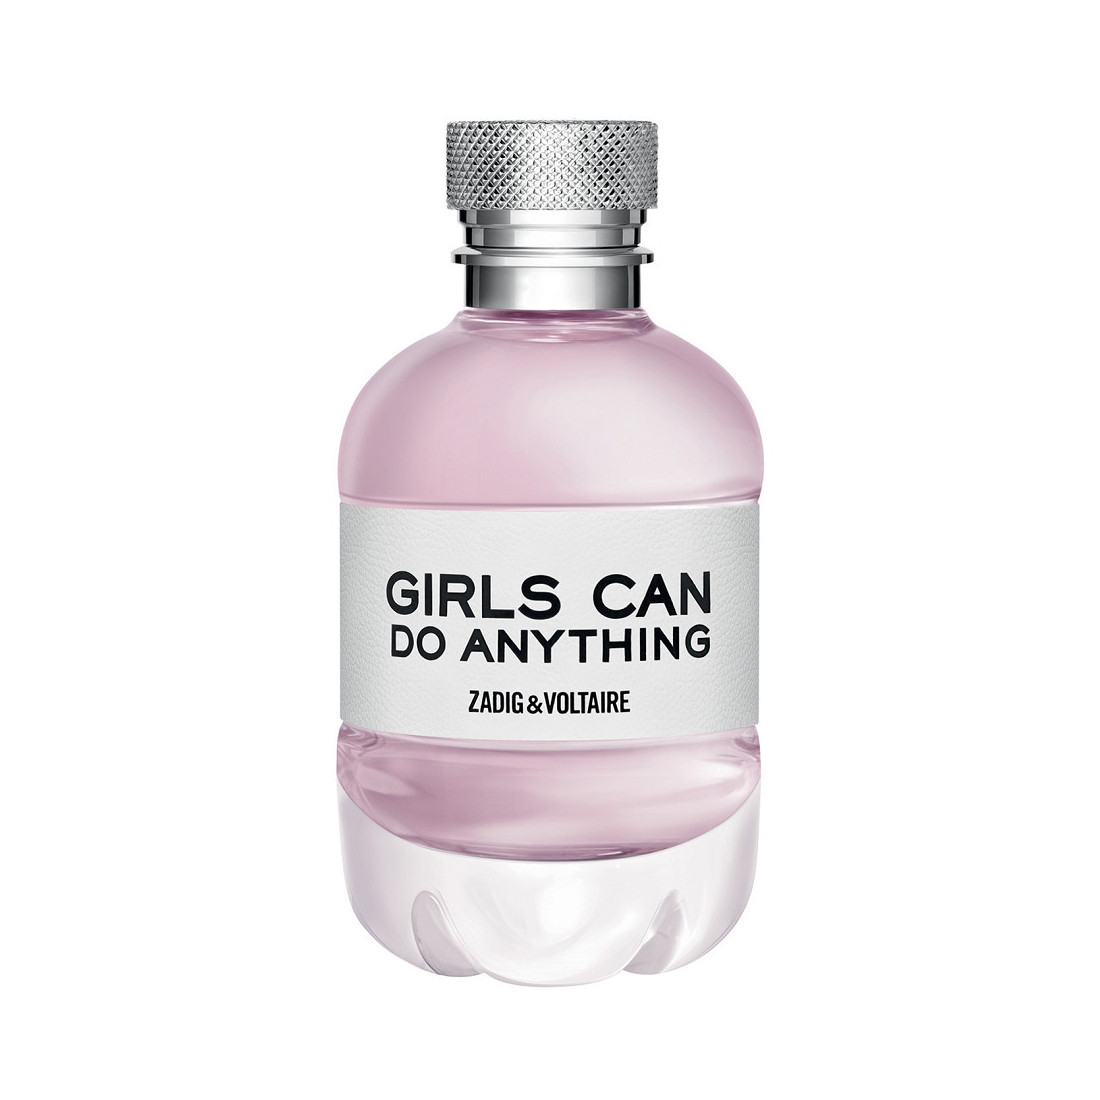 Zadig & Voltaire Girls Can Do Anything Eau De Parfum Spray 90 ml